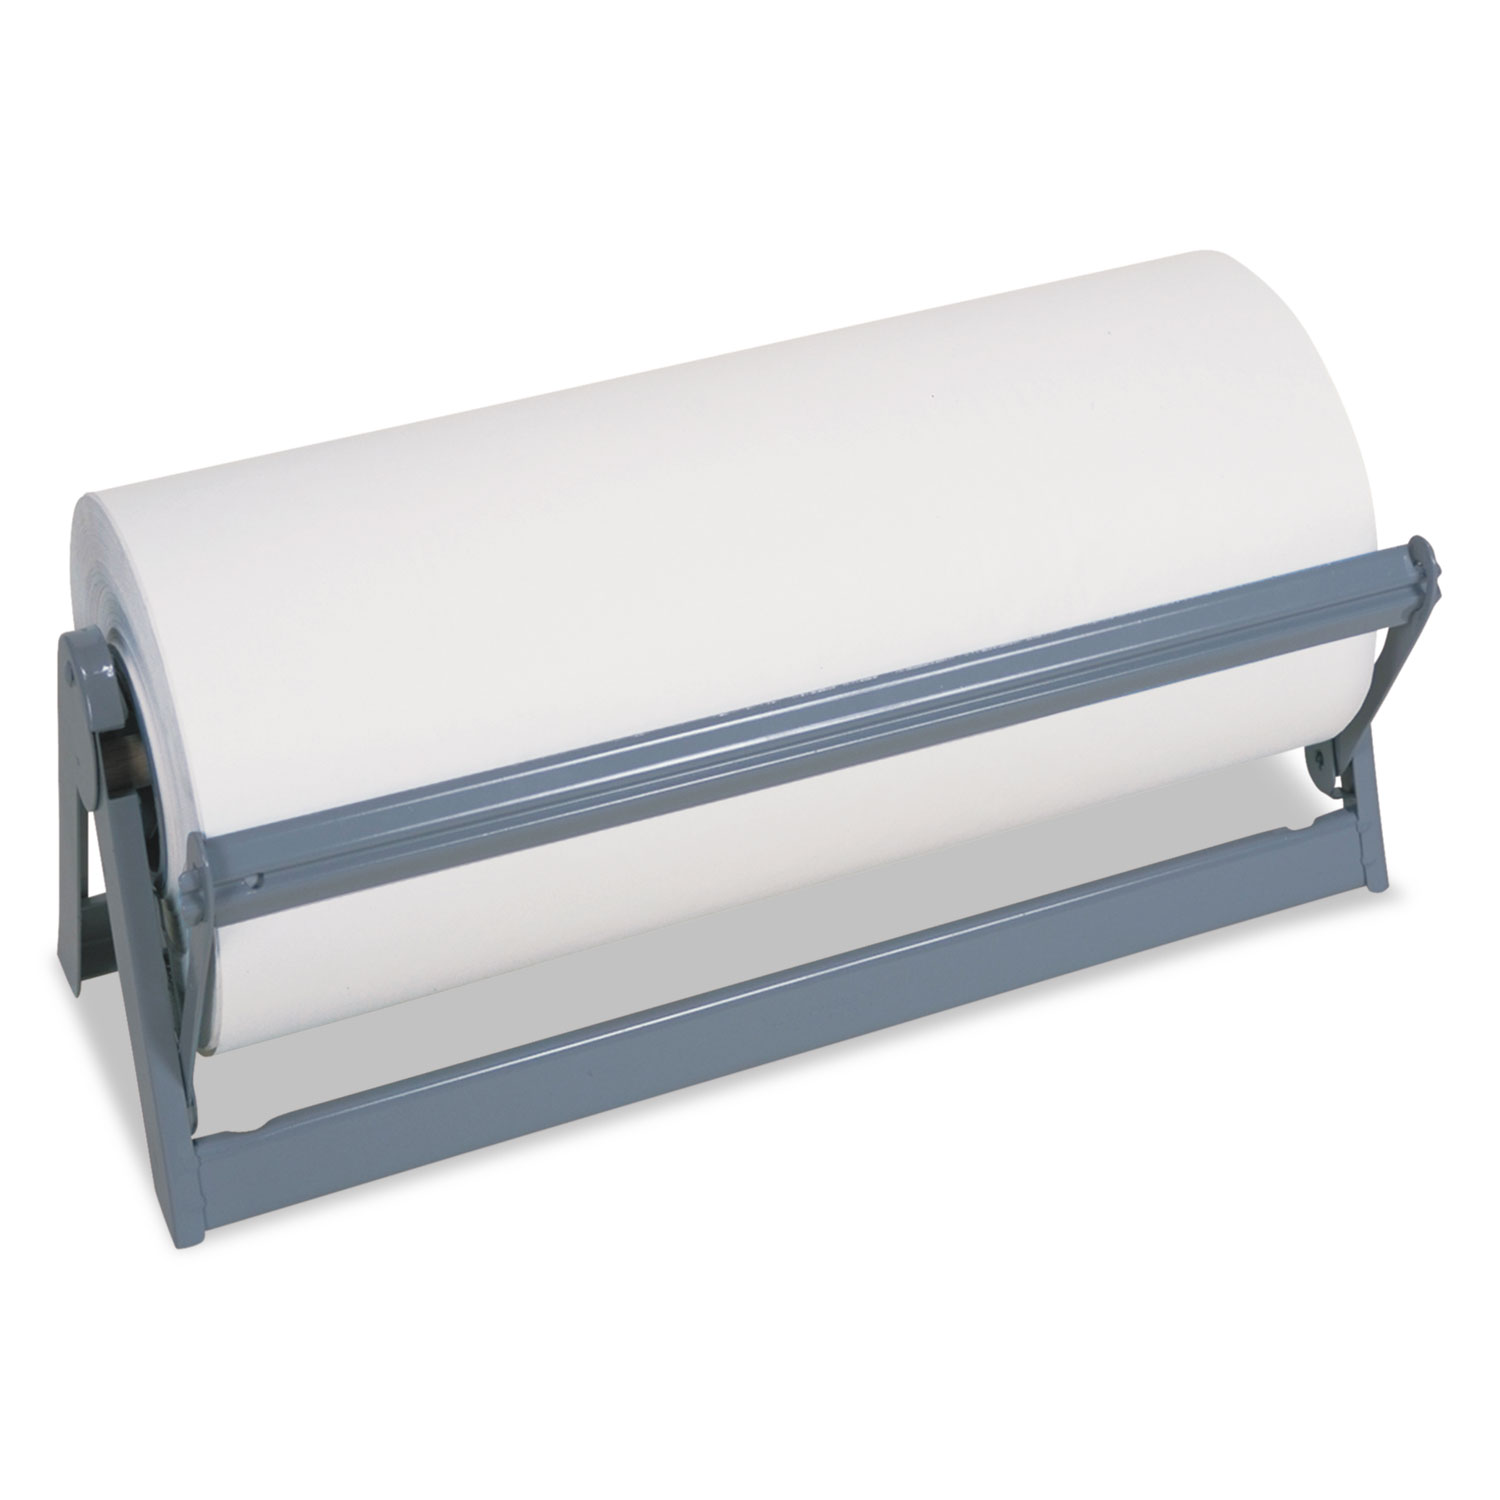 """UFSA50036 Widths to 36/"""" Steel Blade Roll Cutter for Up to 9/"""" Diameter Roll"""